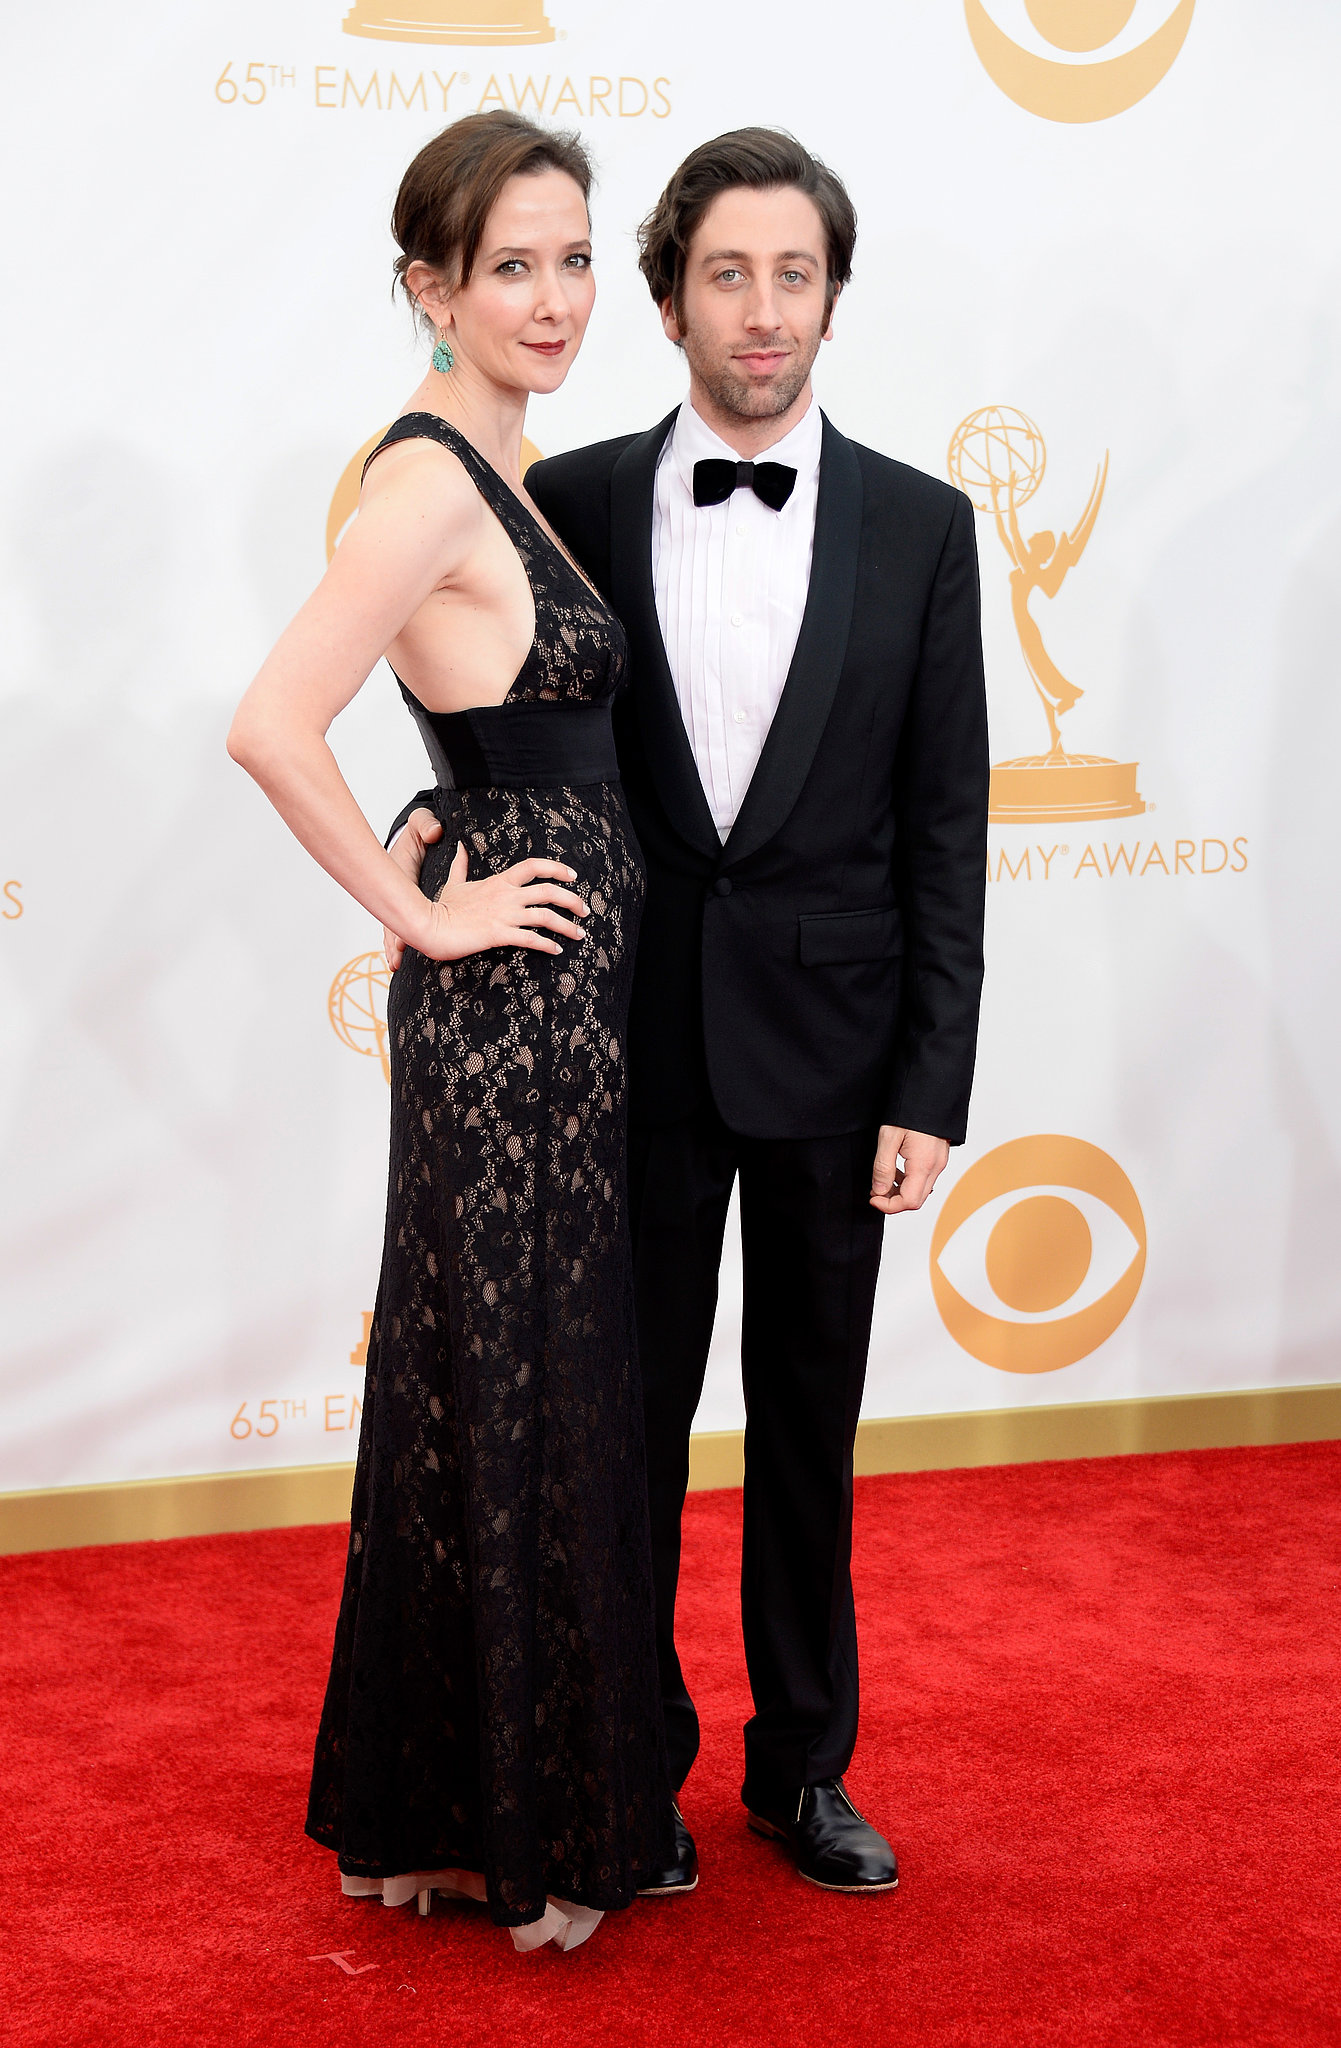 Simon Helberg and Jocelyn Towne hit the red carpet together.